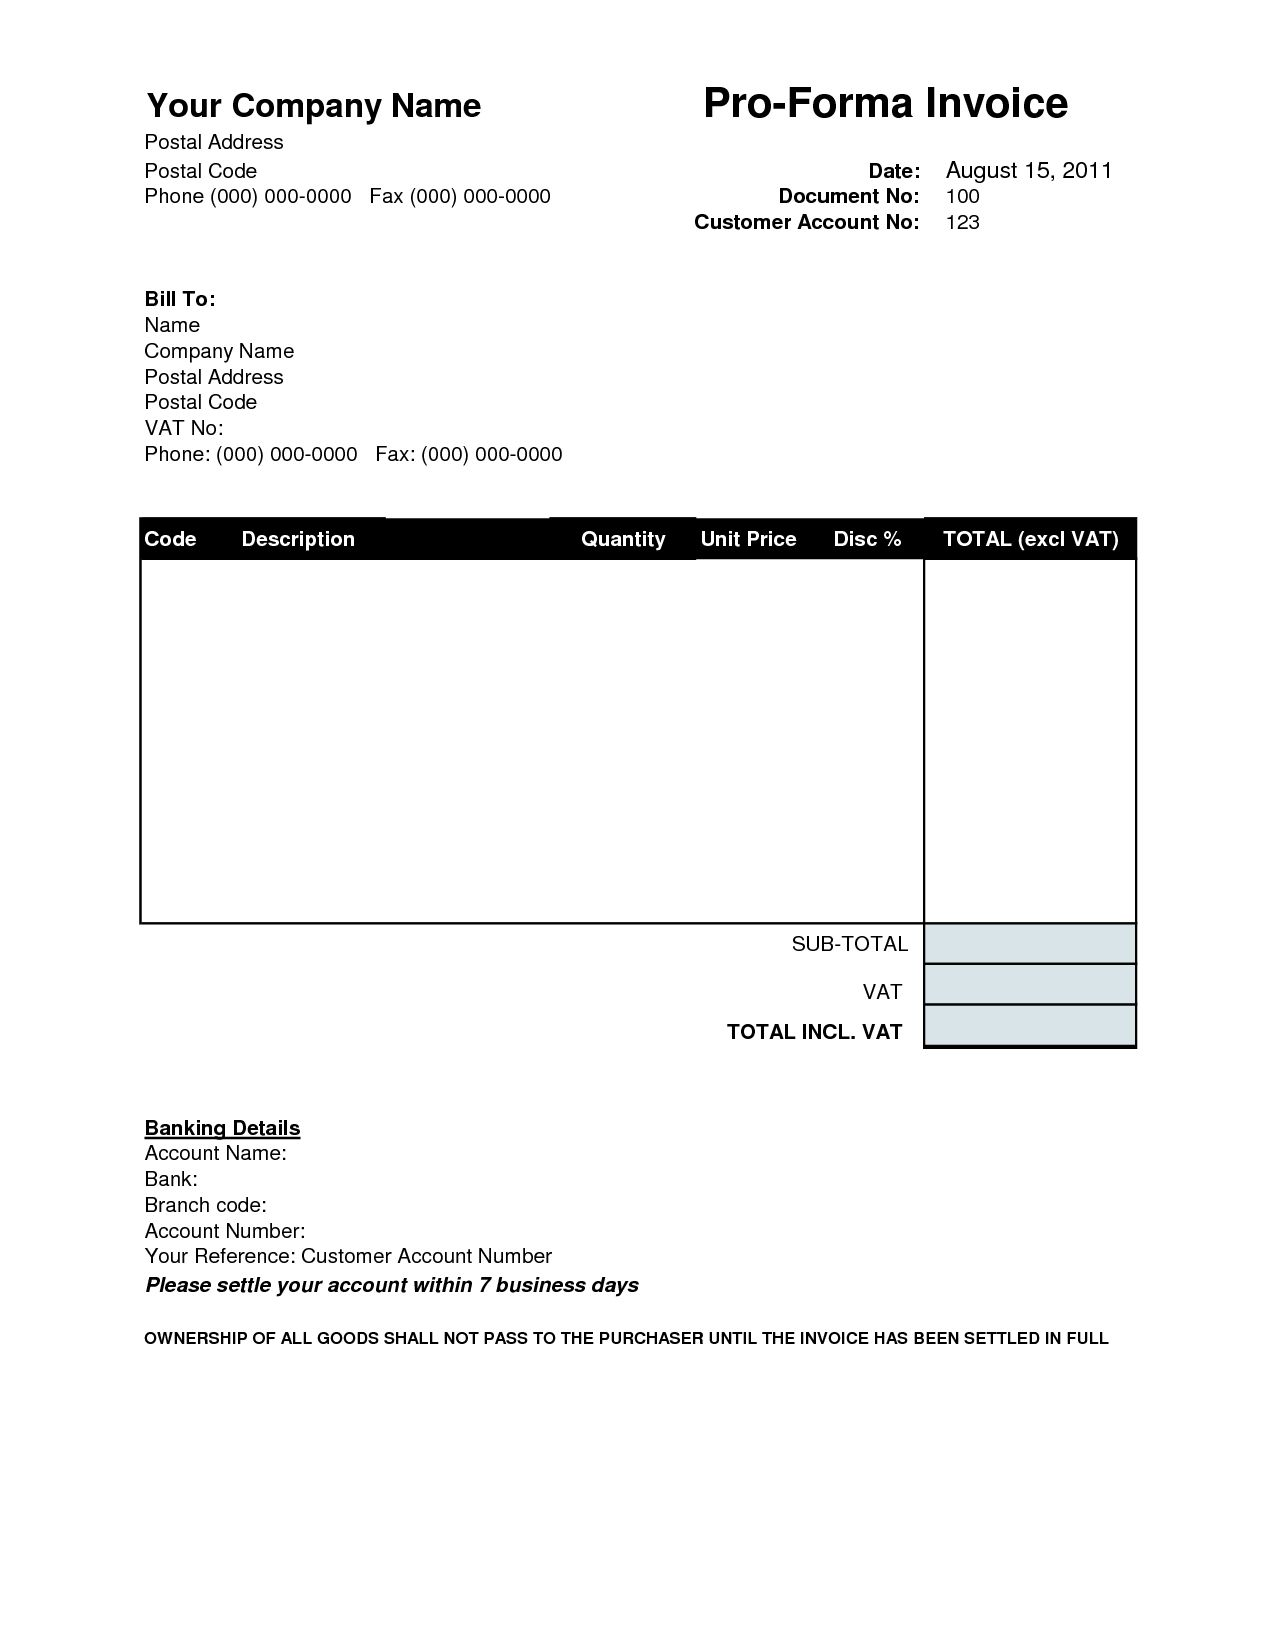 Proforma Template | Proforma Invoice Sample Invoice Template Ideas Performa Invoice